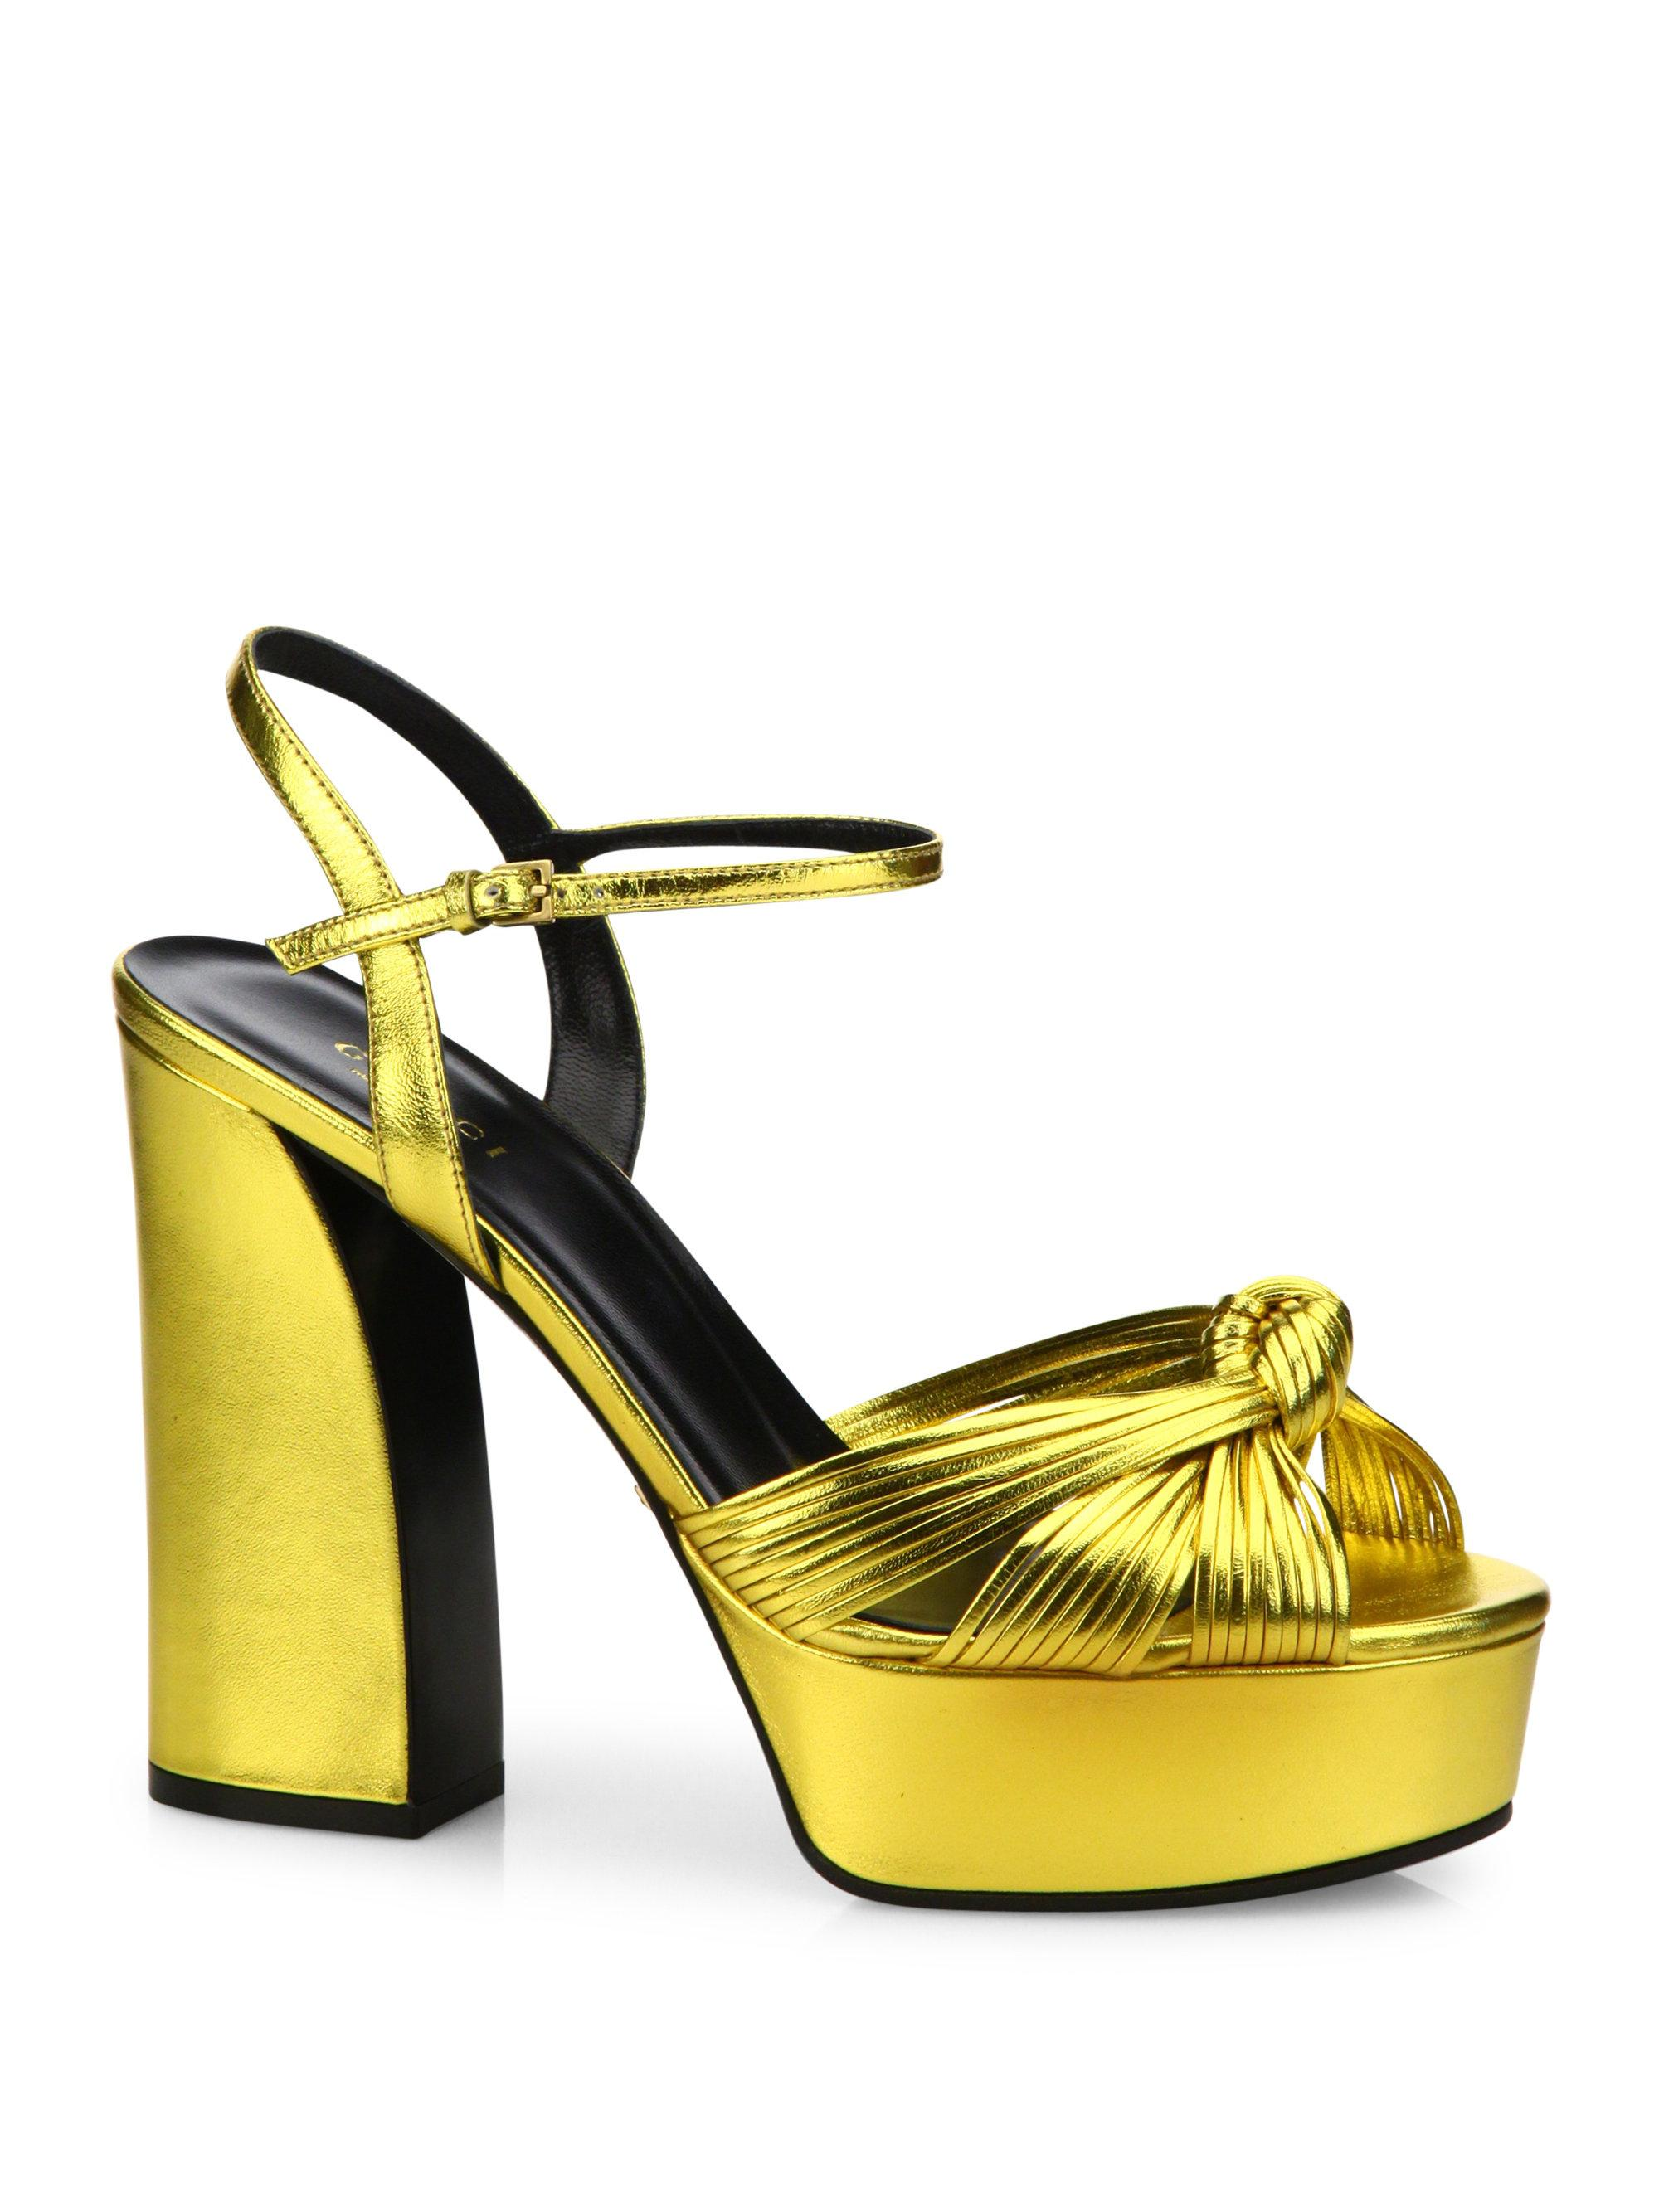 0e3556c538 Gucci Allie Knotted Metallic Leather Platform Sandals in Metallic - Lyst